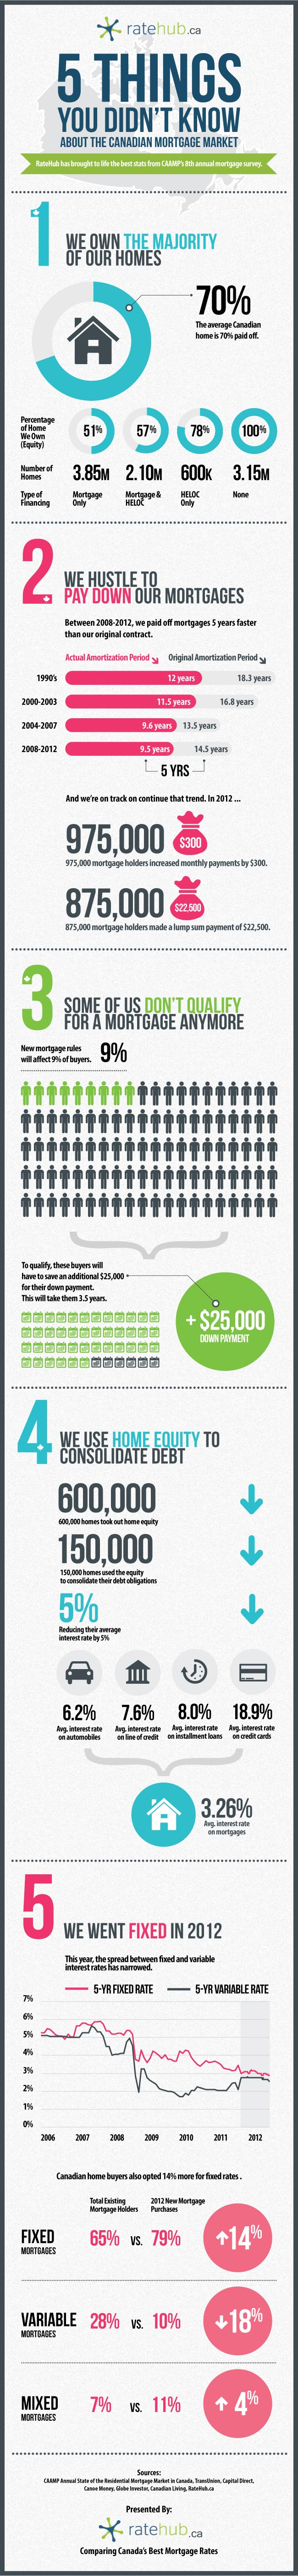 Infographic on Canadians and their mortgages, created by RateHub, search engine for Canada's best mortgage rates